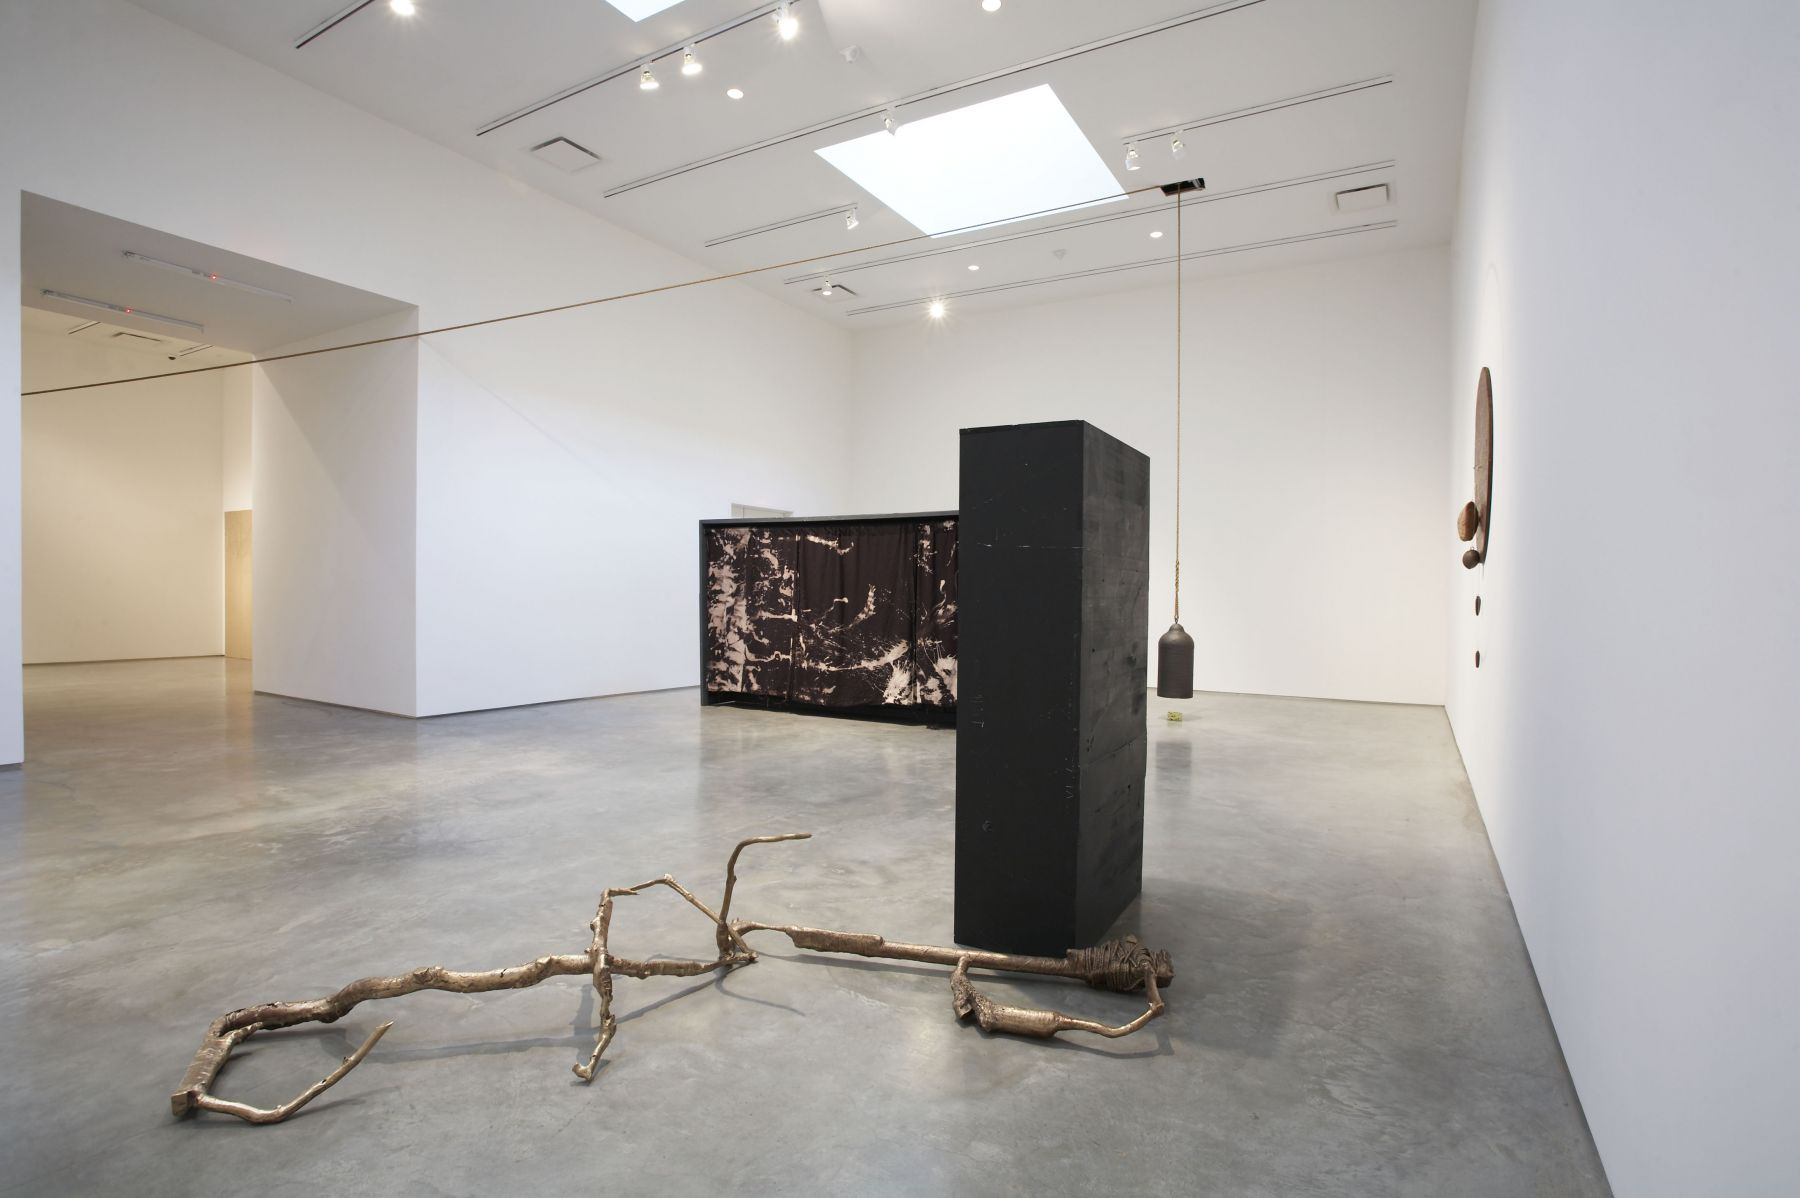 Jay Heikes (Installation view), Marianne Boesky Gallery, 2007